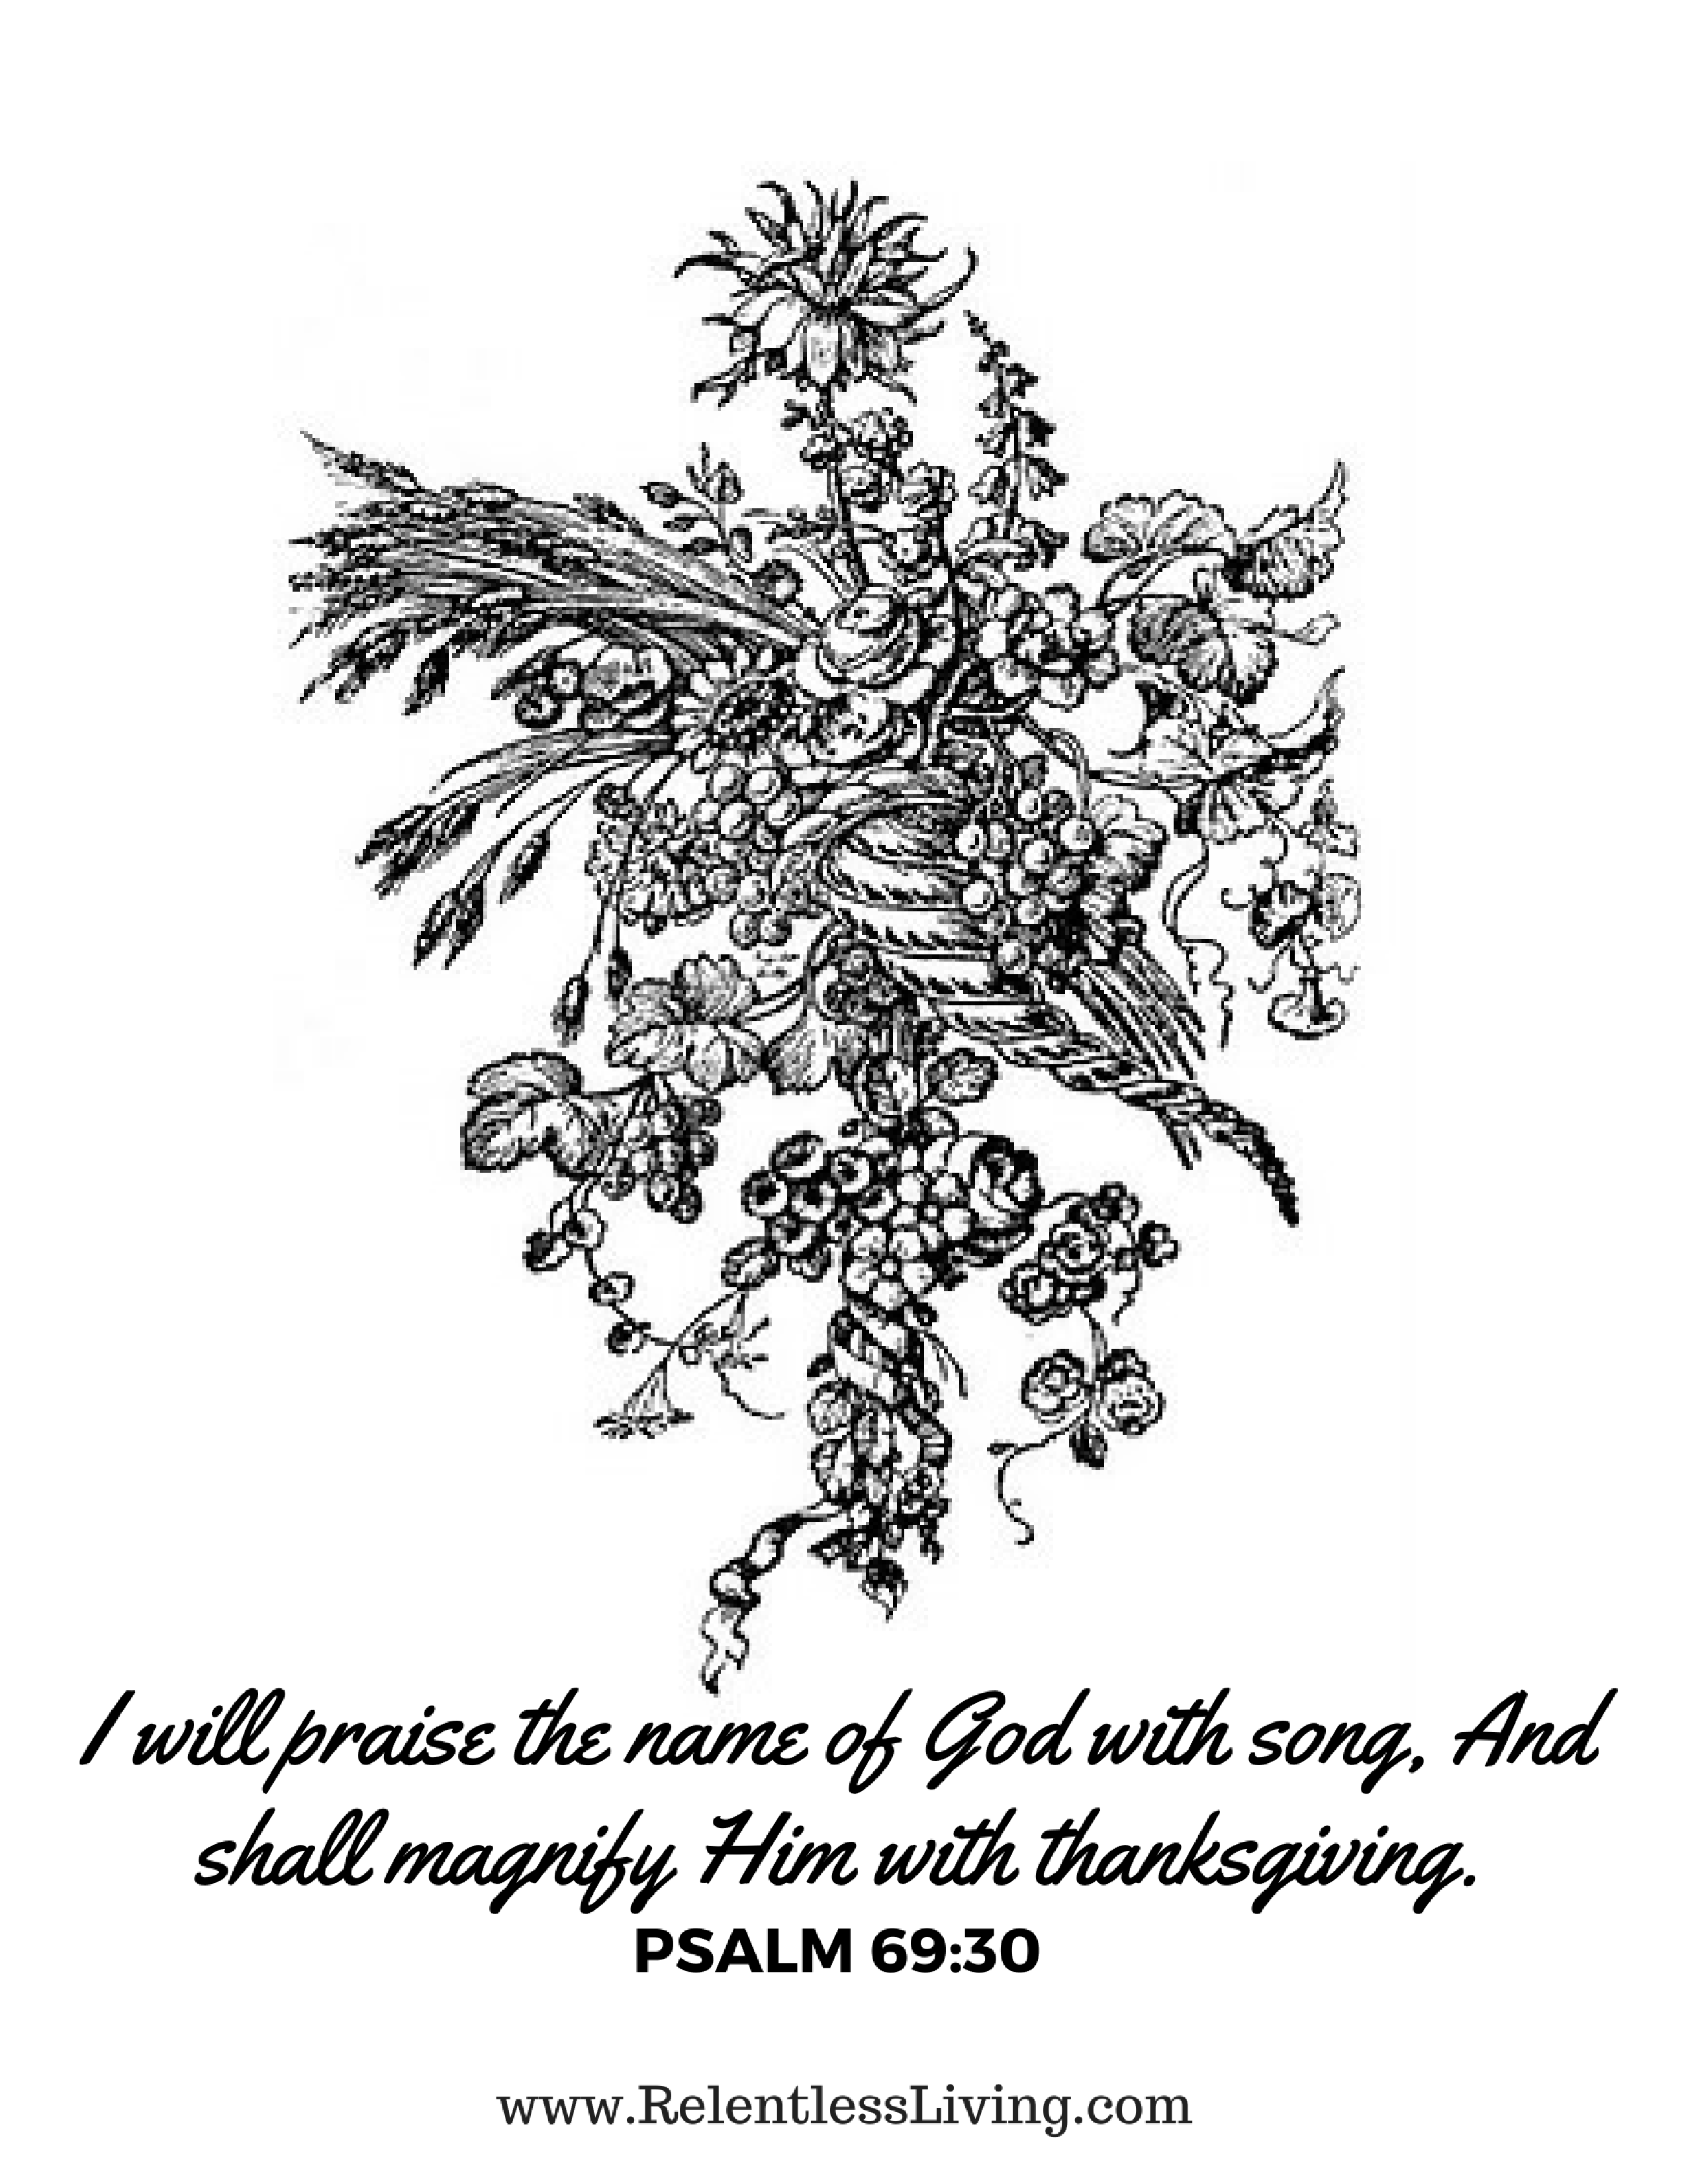 A Free Thanksgiving Coloring Page – Relentless Living